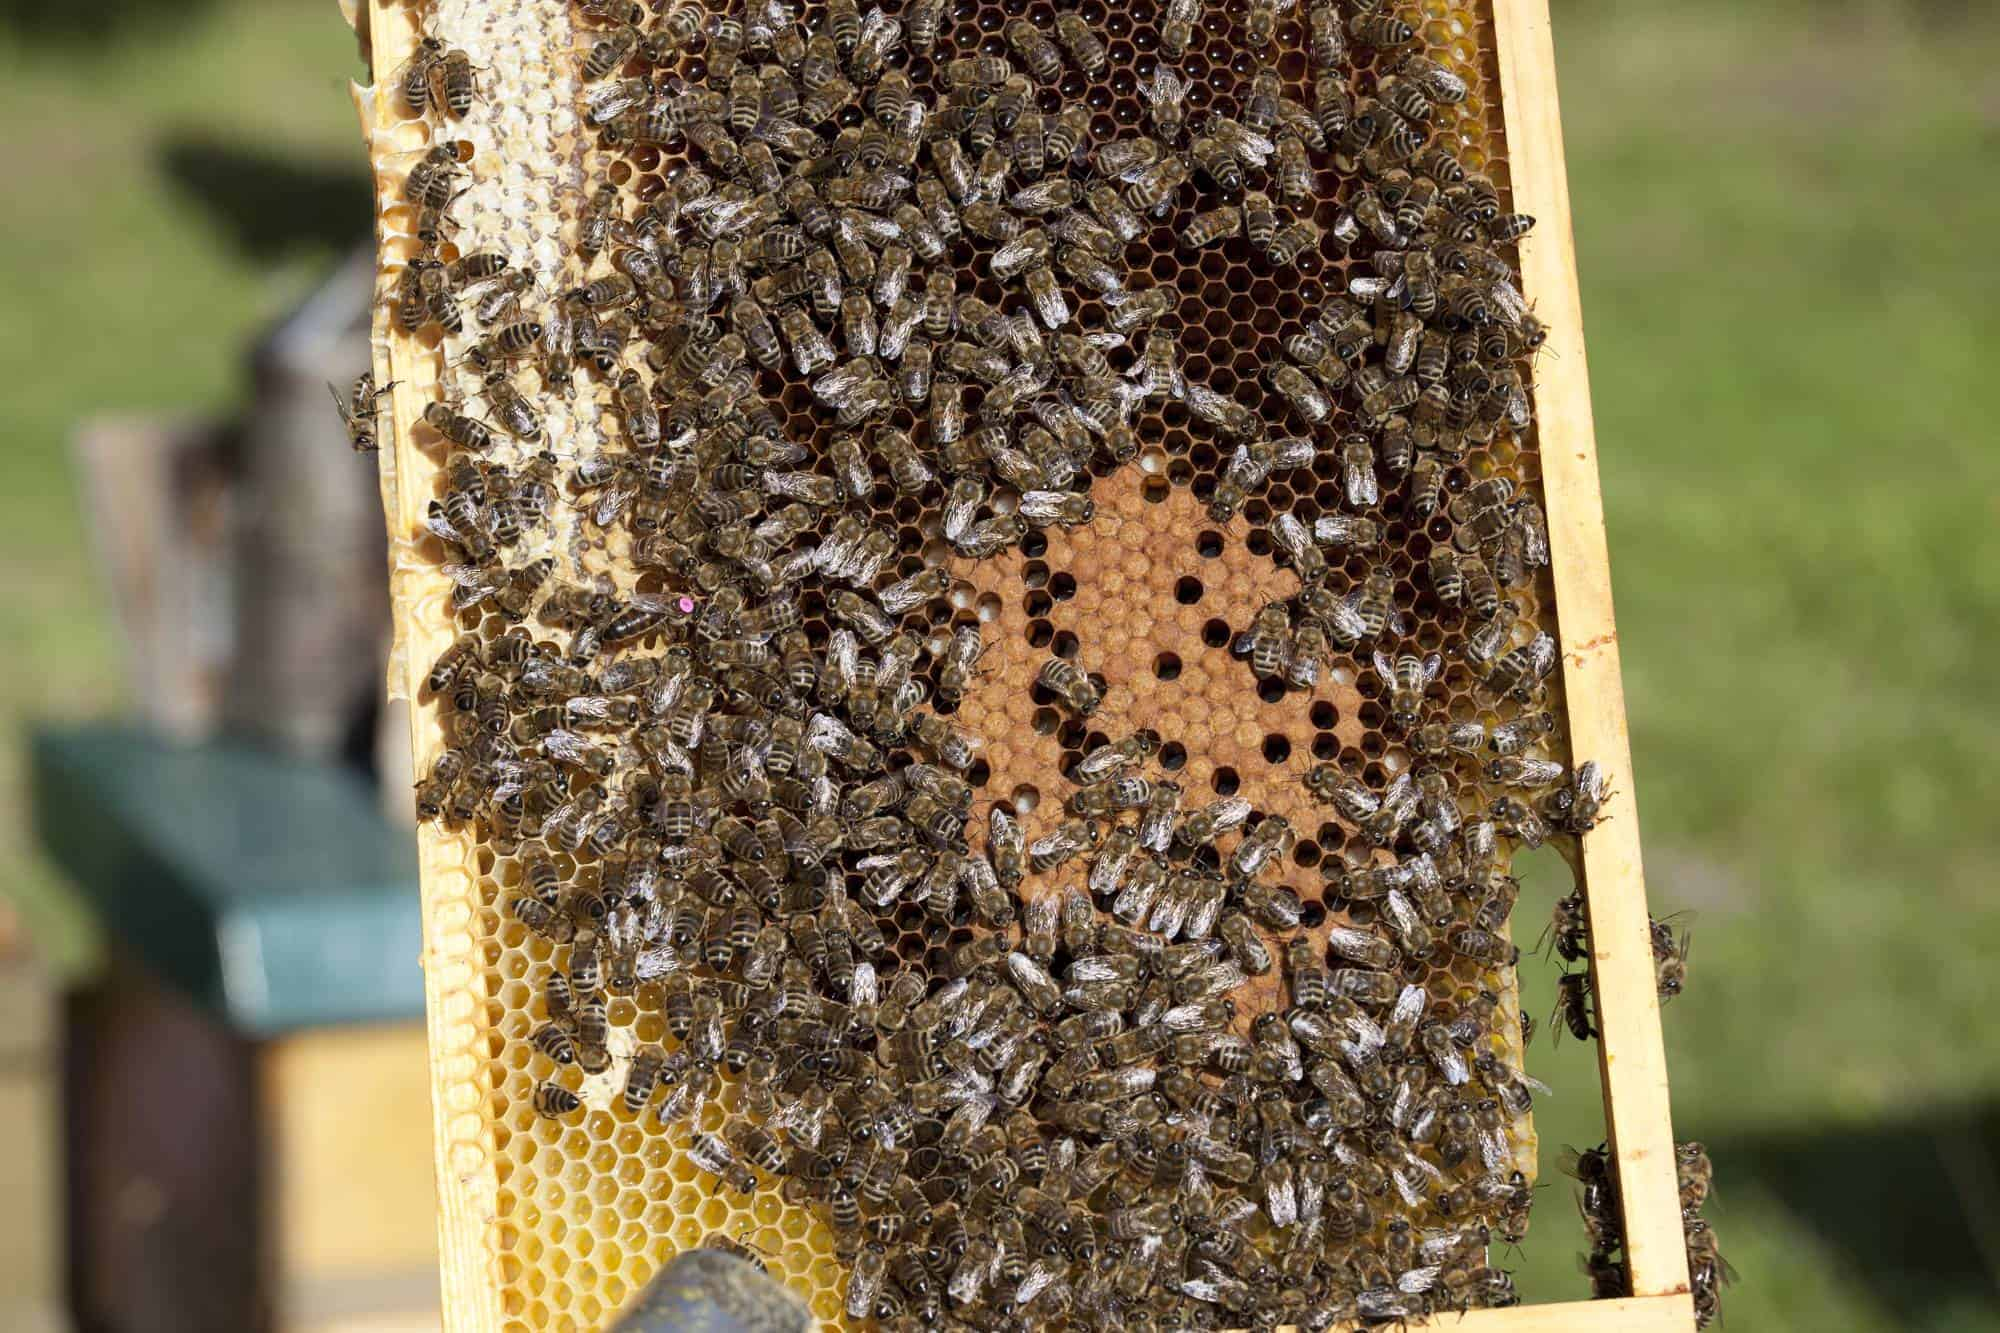 Bees Without Their Queen